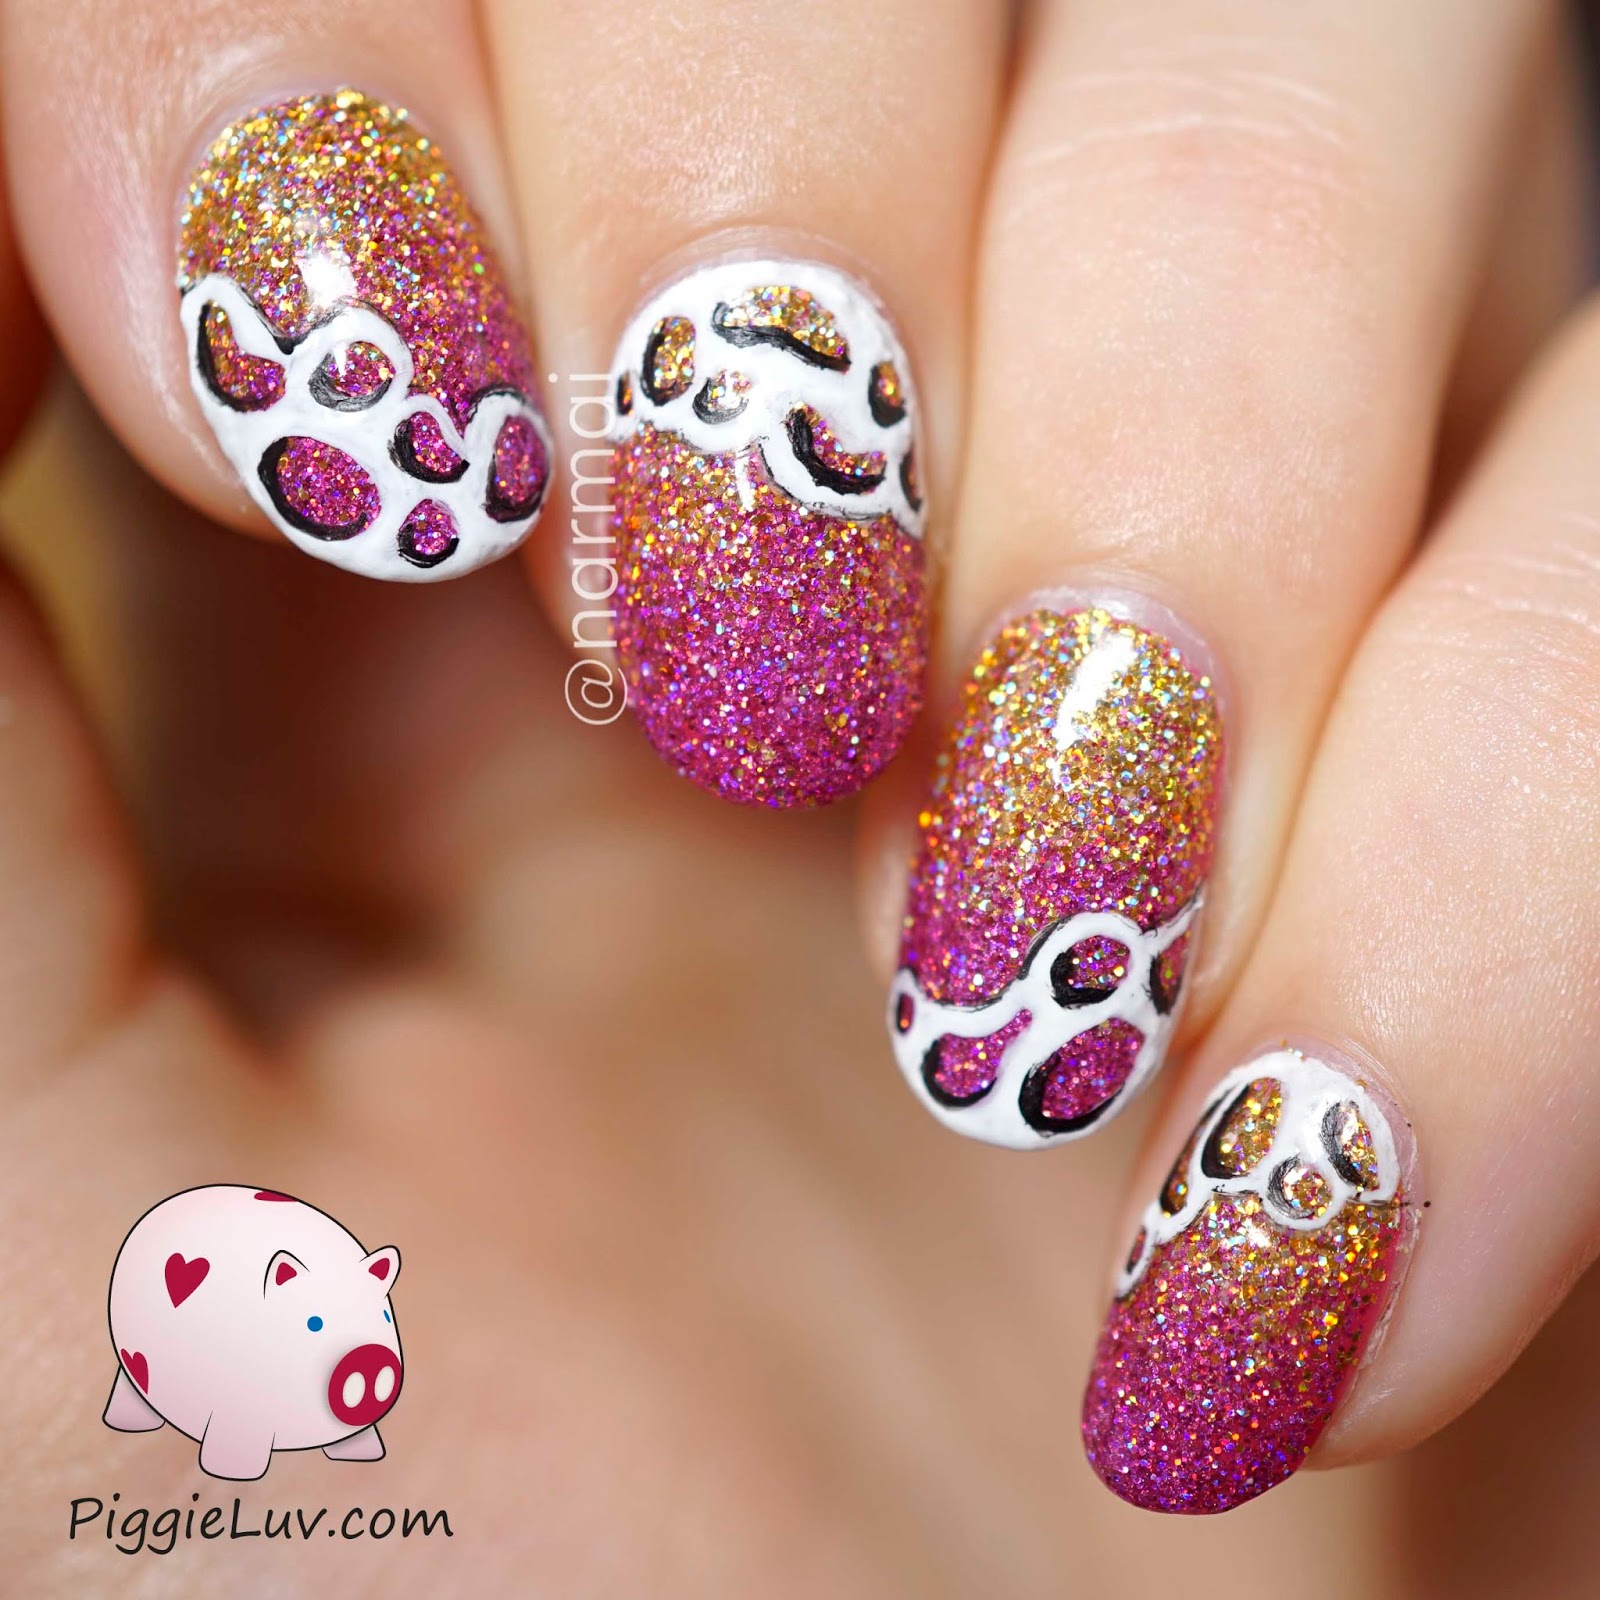 Girly Nail Art Designs: PiggieLuv